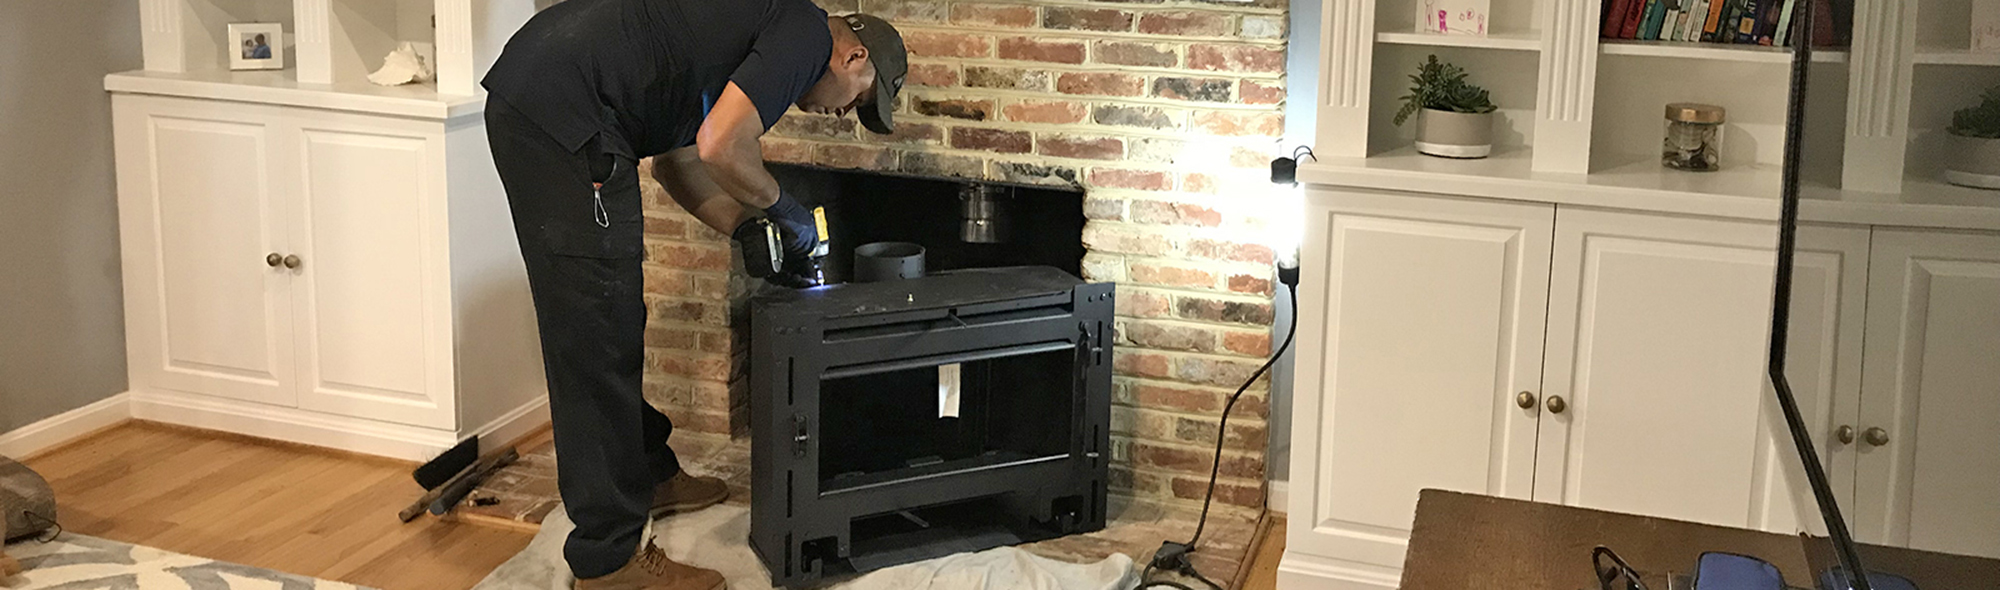 fireplace insert installation in Baltimore MD